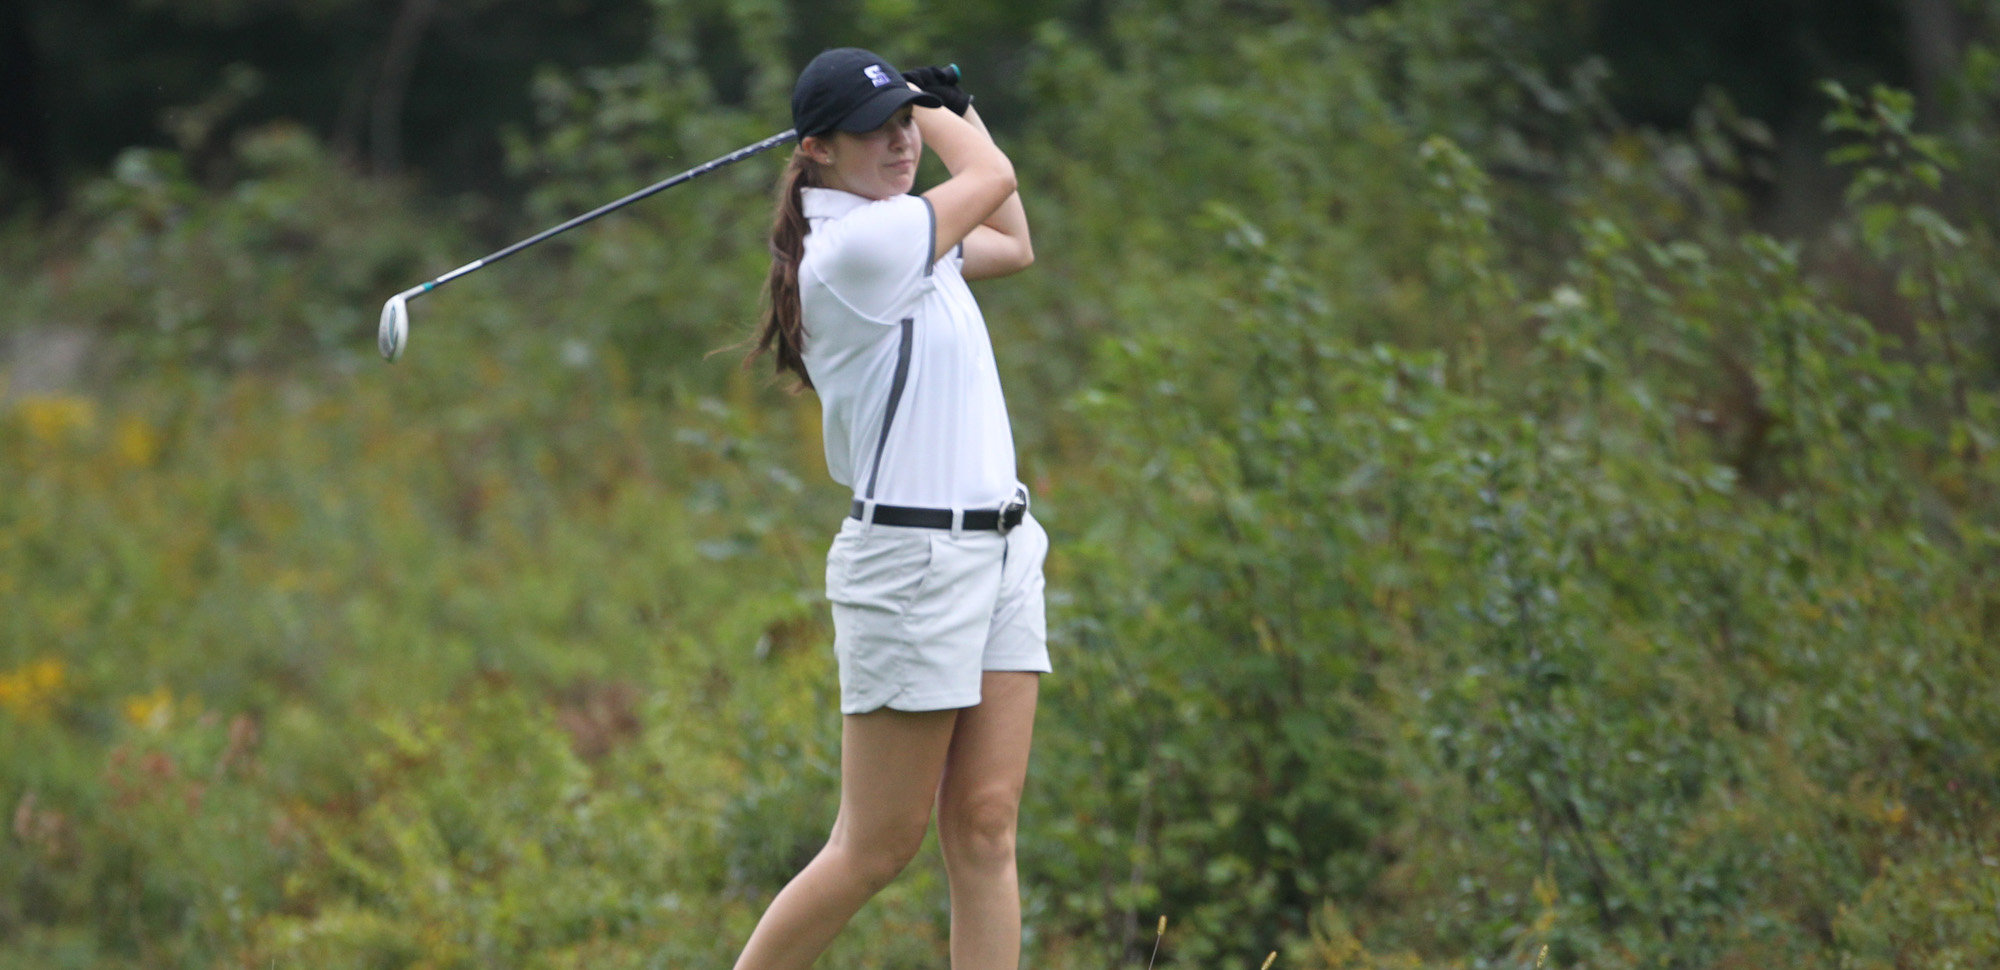 Freshman Emma Nemitz led Scranton with a 96 on Saturday at the Susquehanna Invitational. © Photo by Timothy R. Dougherty / doubleeaglephotography.com